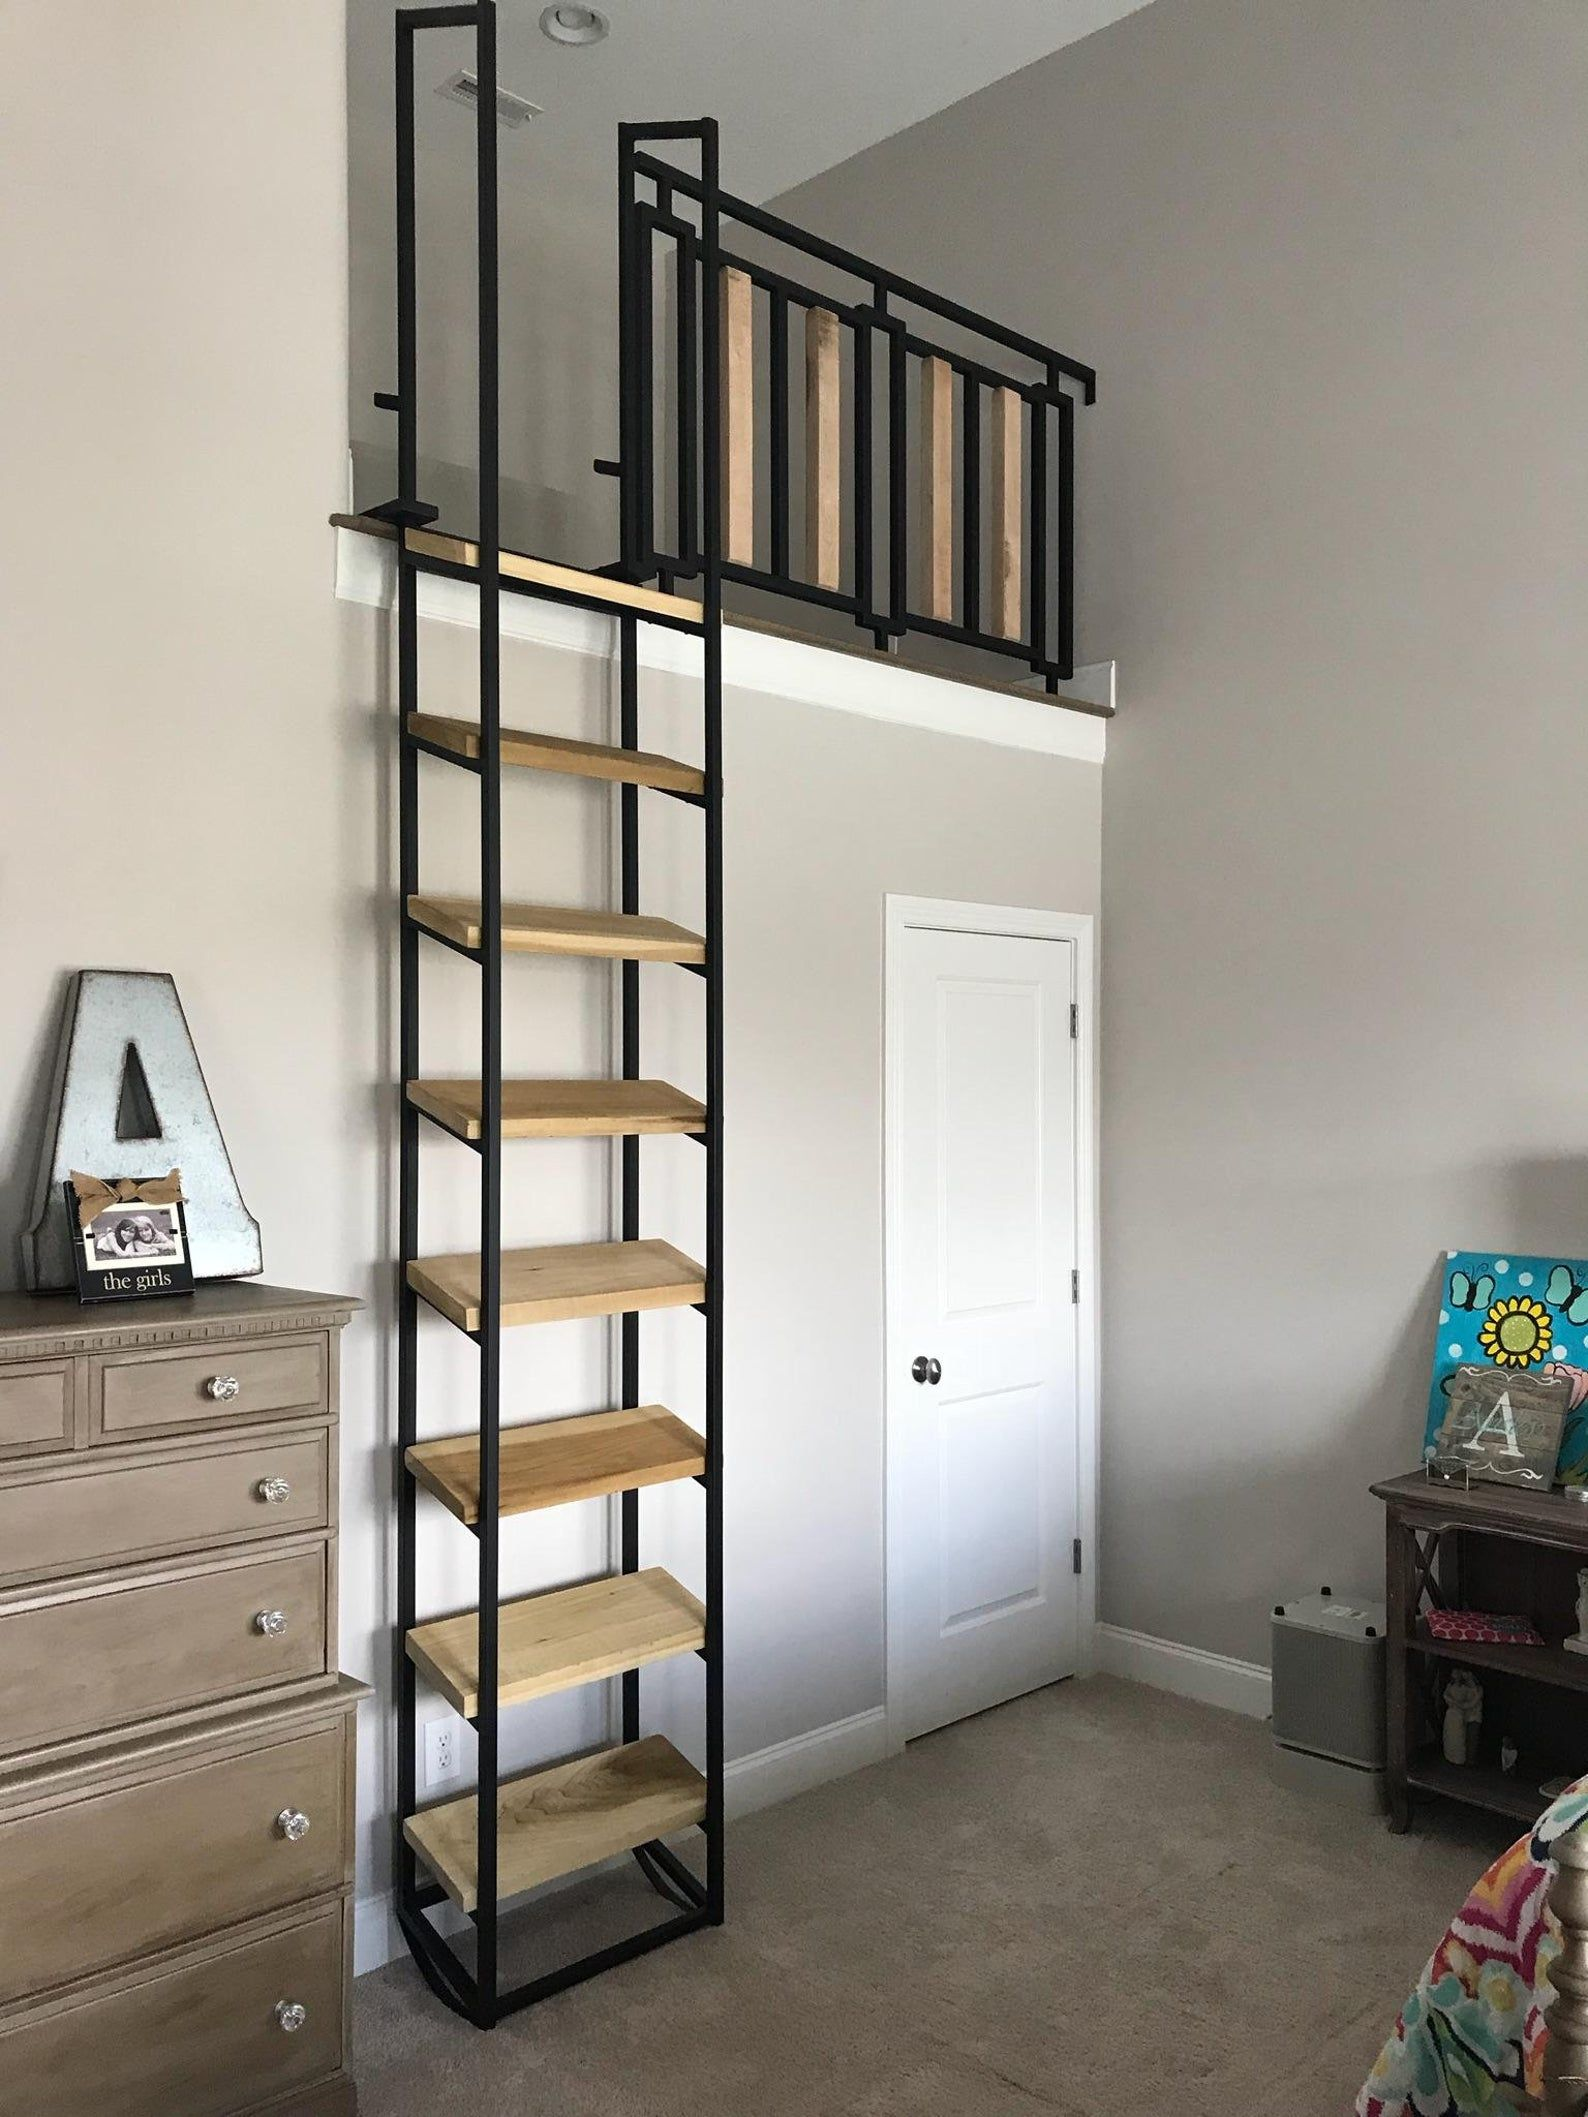 10 Ft Loft Ladder Free Shipping To Your Door Etsy In 2020 Loft Ladder Loft Railing Loft